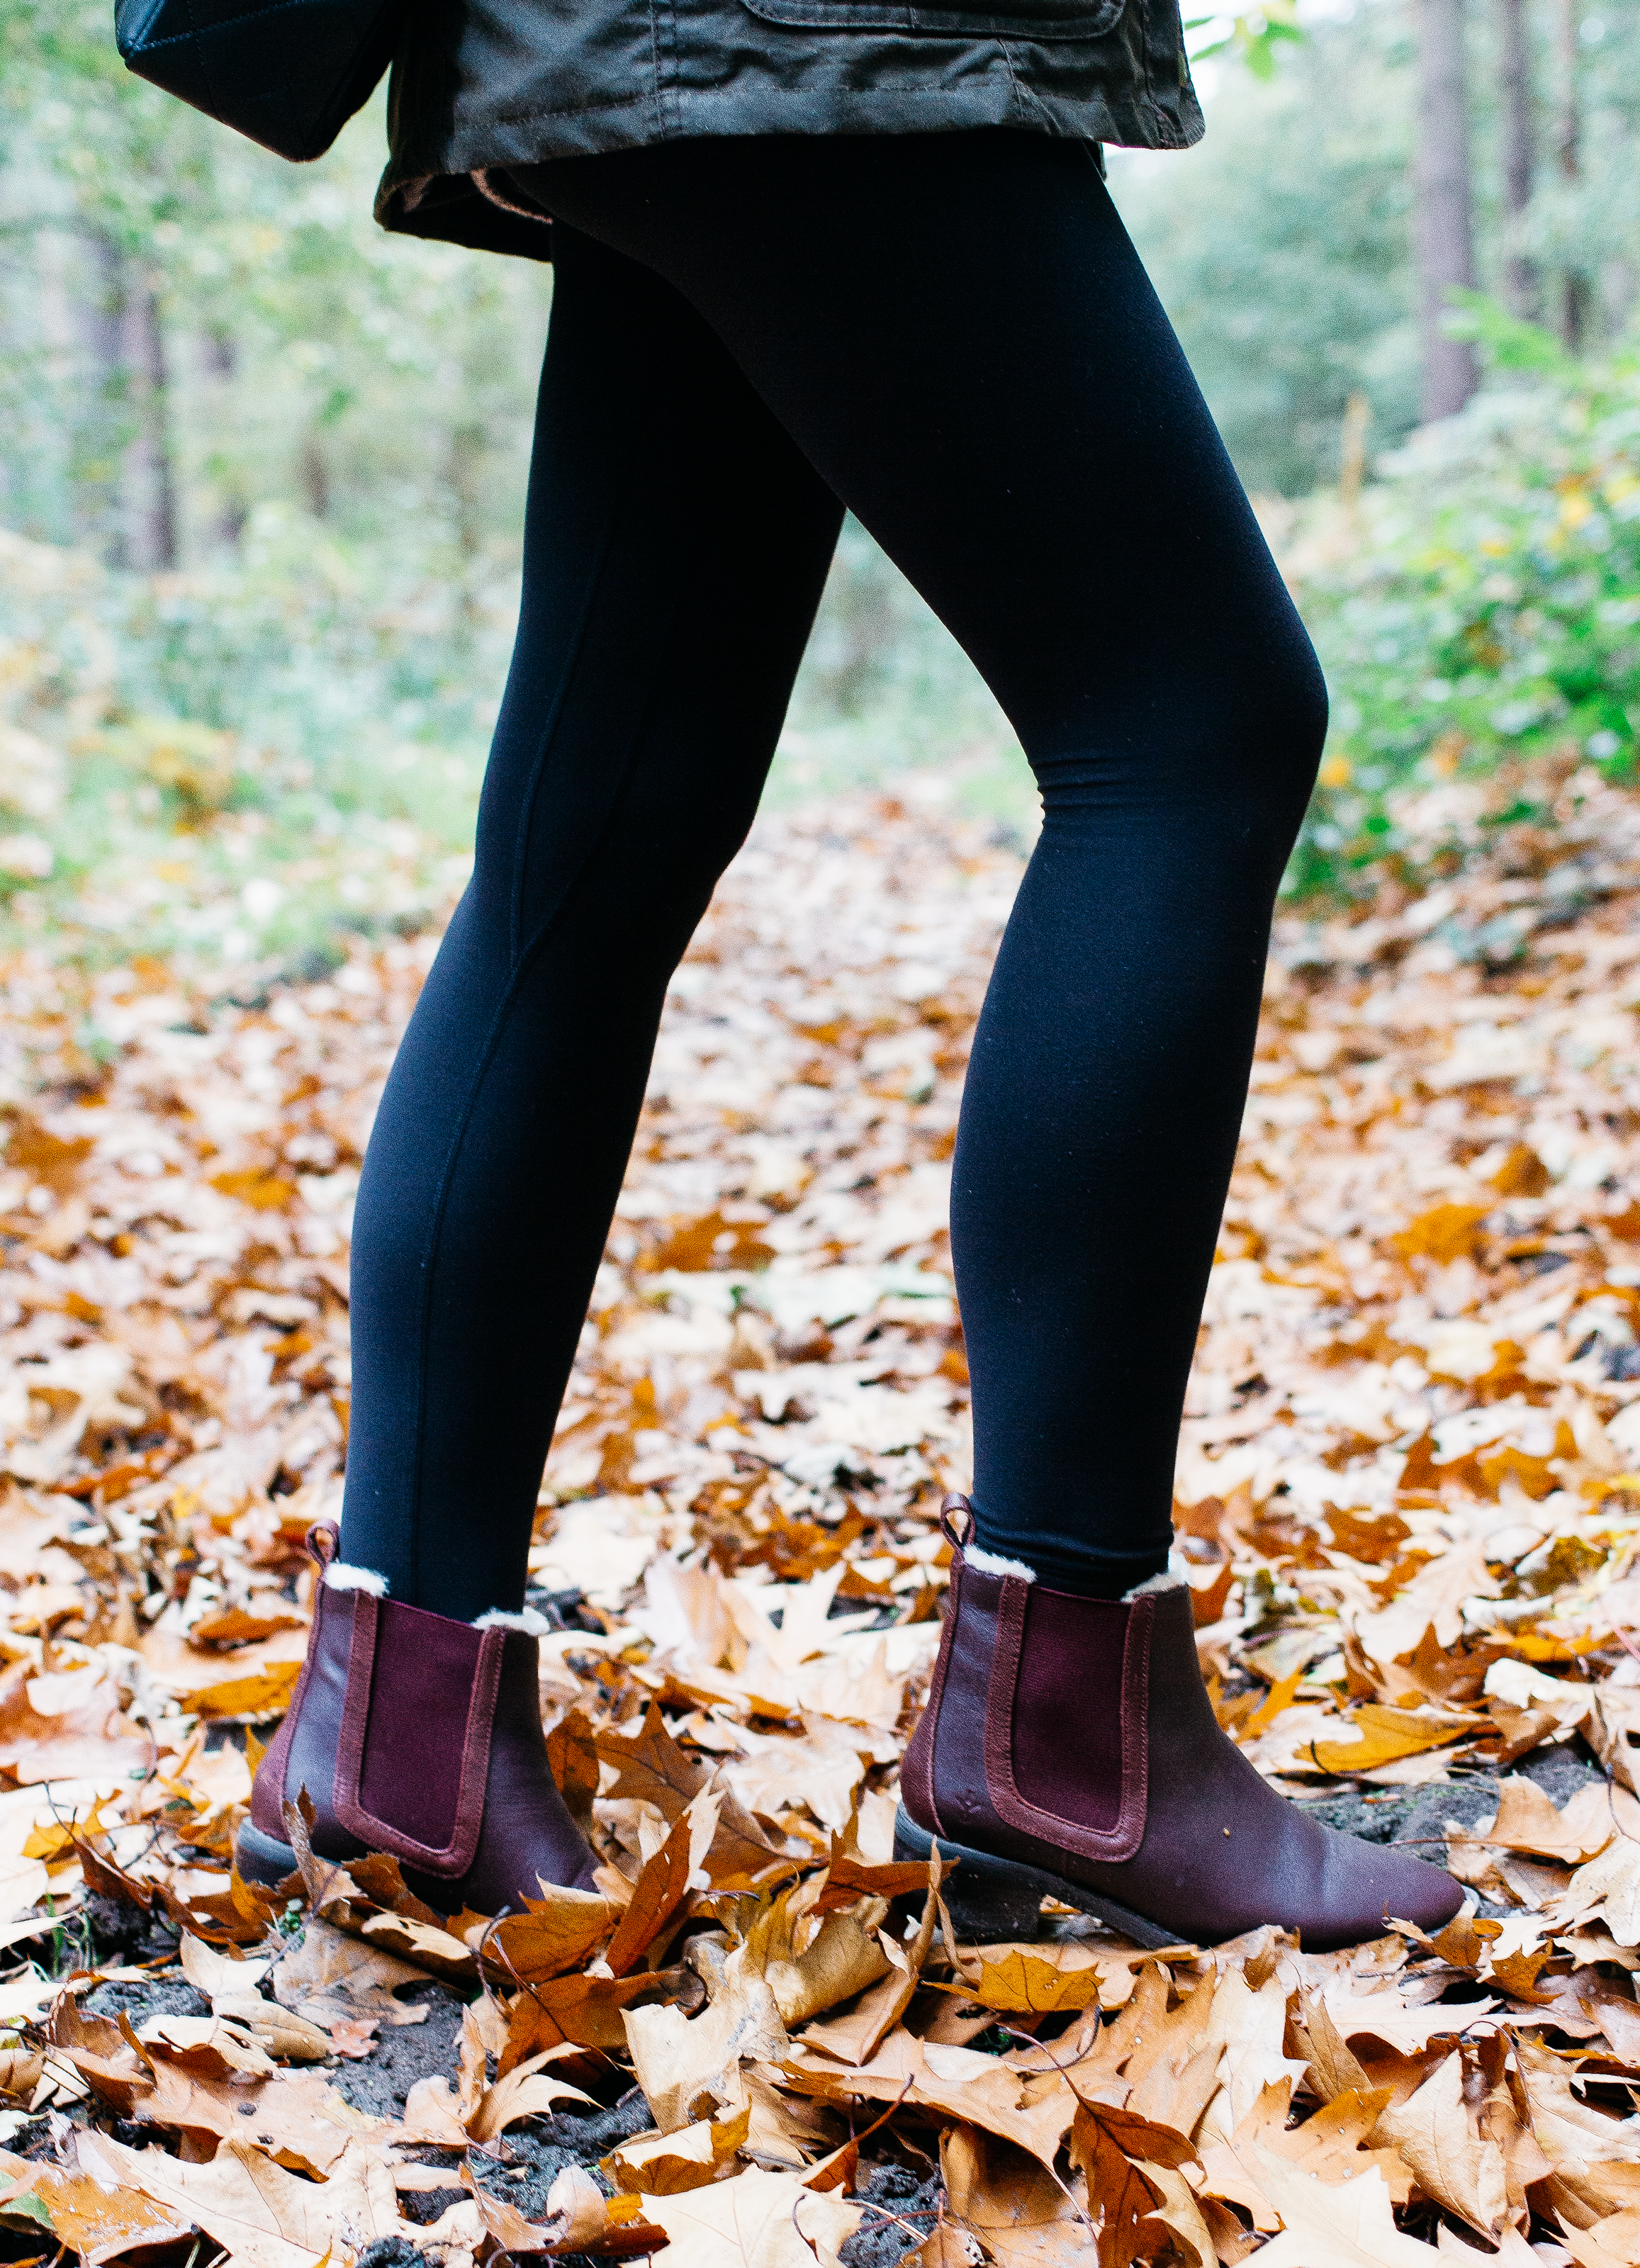 shearling lined boots - When Josie came into our lives and we started walking every single day I soon realised that I needed a good pair of warm boots. And anything lined with shearling fits the bill perfectly for me as I love how snug they are without the need for huge chunky socks. I have a couple of pairs that I like to rotate between, the burgundy pair in the photograph are from Emu (gifted) that I like to wear throughout Autumn on walks as well as whenever I'm nipping into the city as they're practical but look pretty smart too. The second pair comes from UGG (gifted from a paid partnership) that are my go-to for whenever its snowed or it's icy and they are the warmest pair of boots to ever grace my feet. They're in a military-style which is something that I always loved but worried they wouldn't be the most flattering on the leg but these are and oh so comfortable.